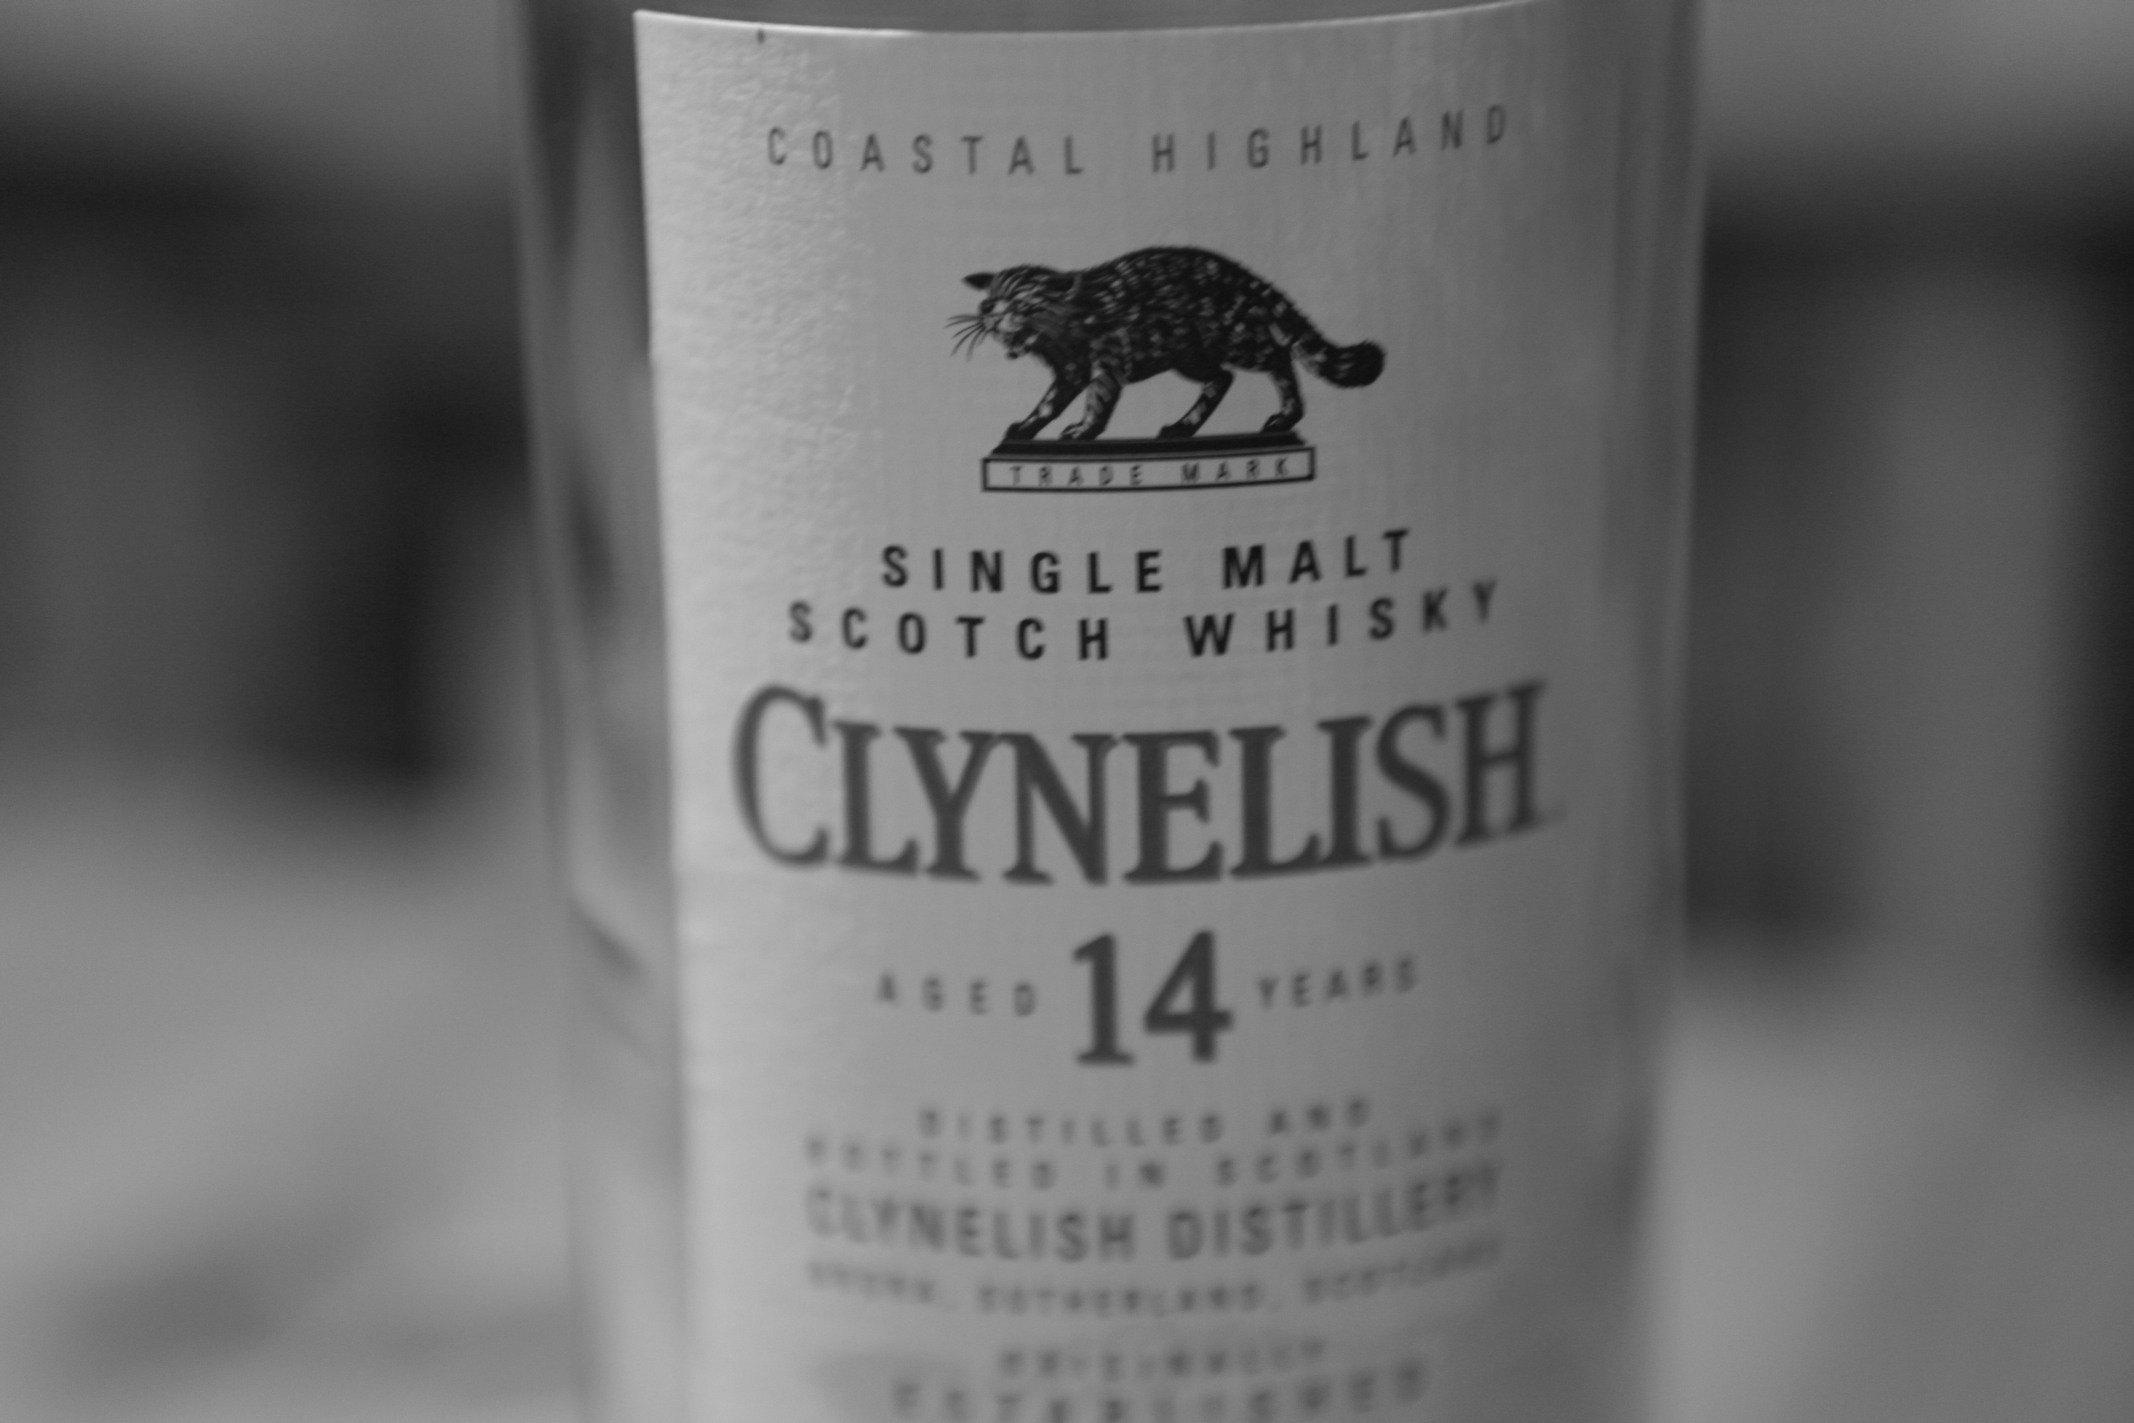 Clynelish 14yr Whisky Review